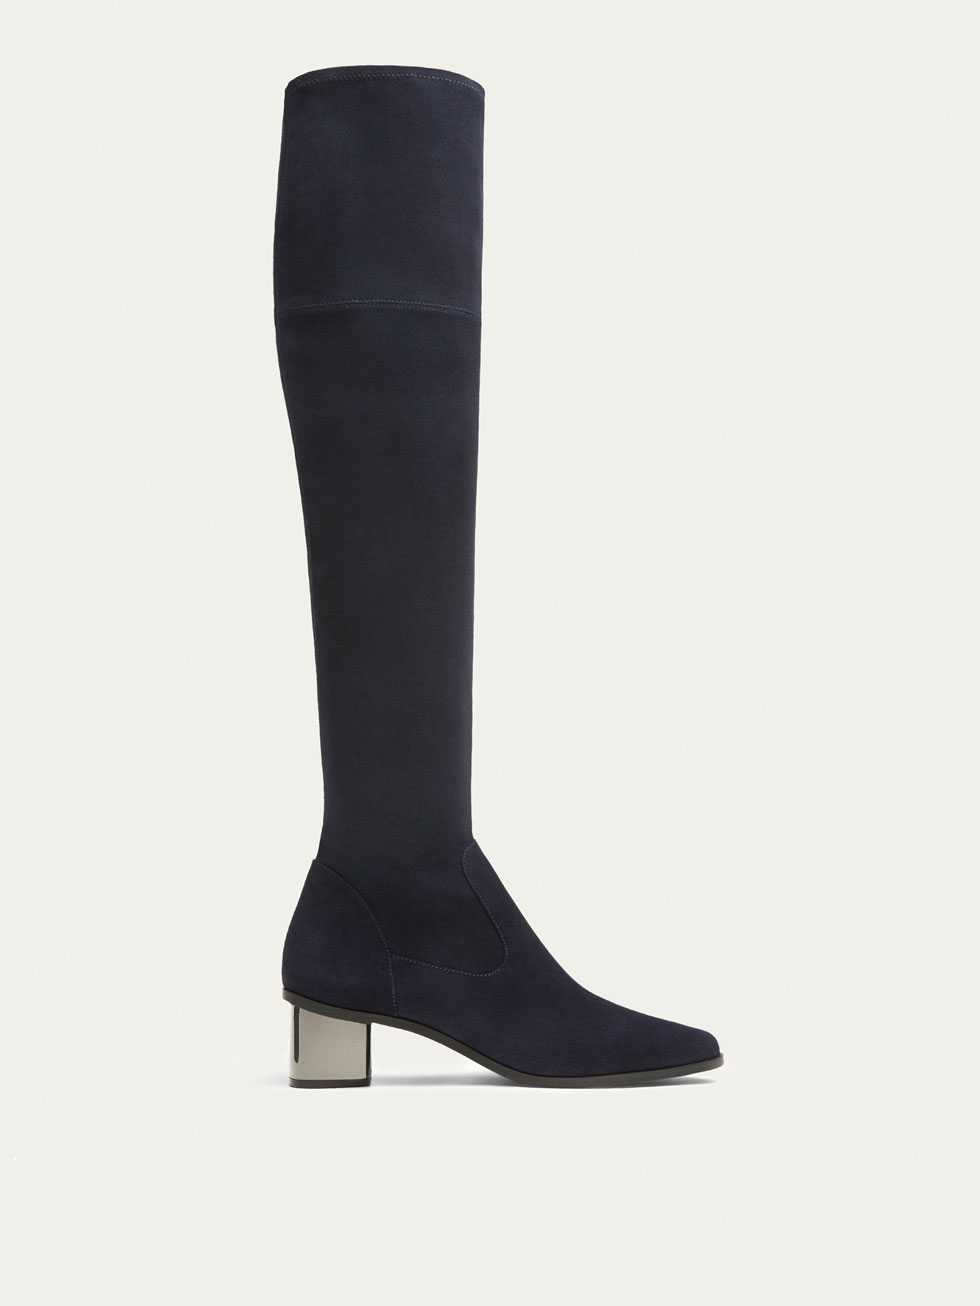 BLUE SUEDE HIGH HEEL BOOTS - Women - Massimo Dutti